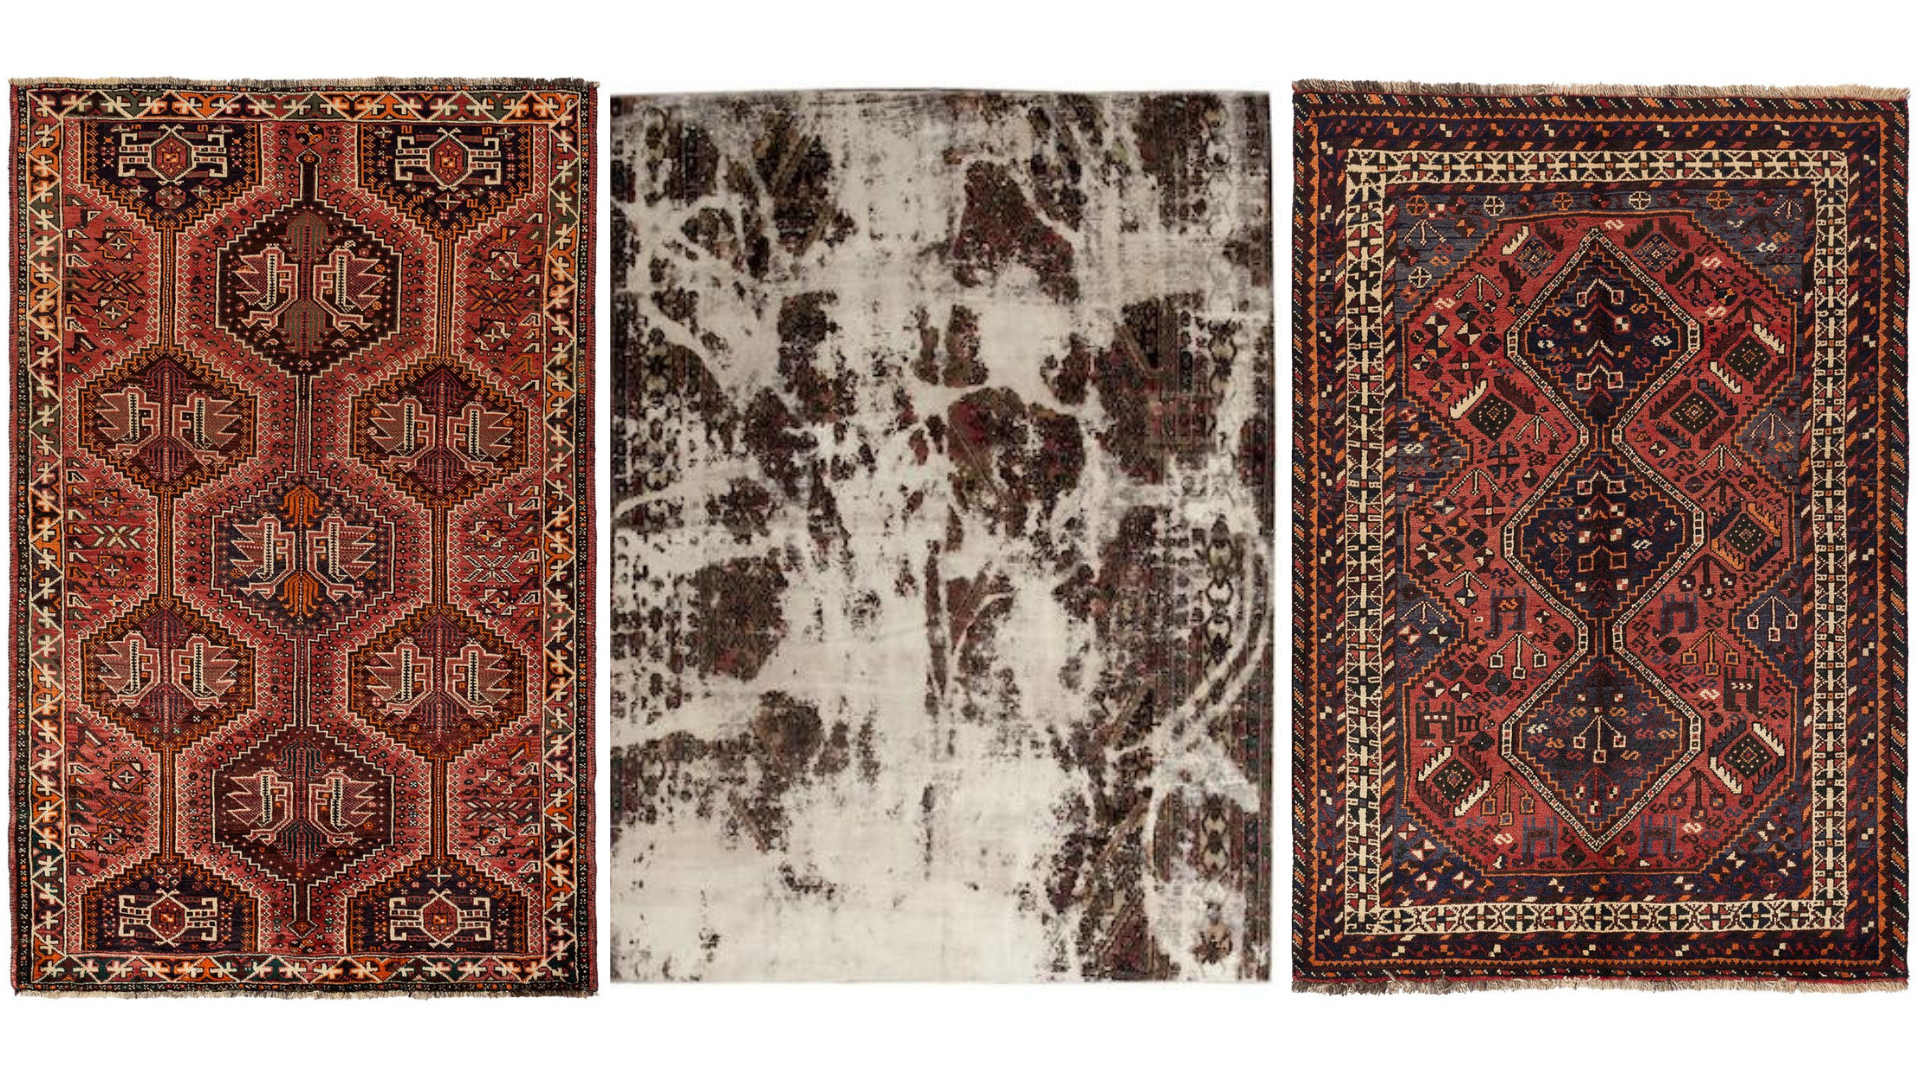 persian rugs, oriental rugs, interior design, design ideas, home decor, home accessories, london rugs, rug collections, design inspiration, 2021 design trends